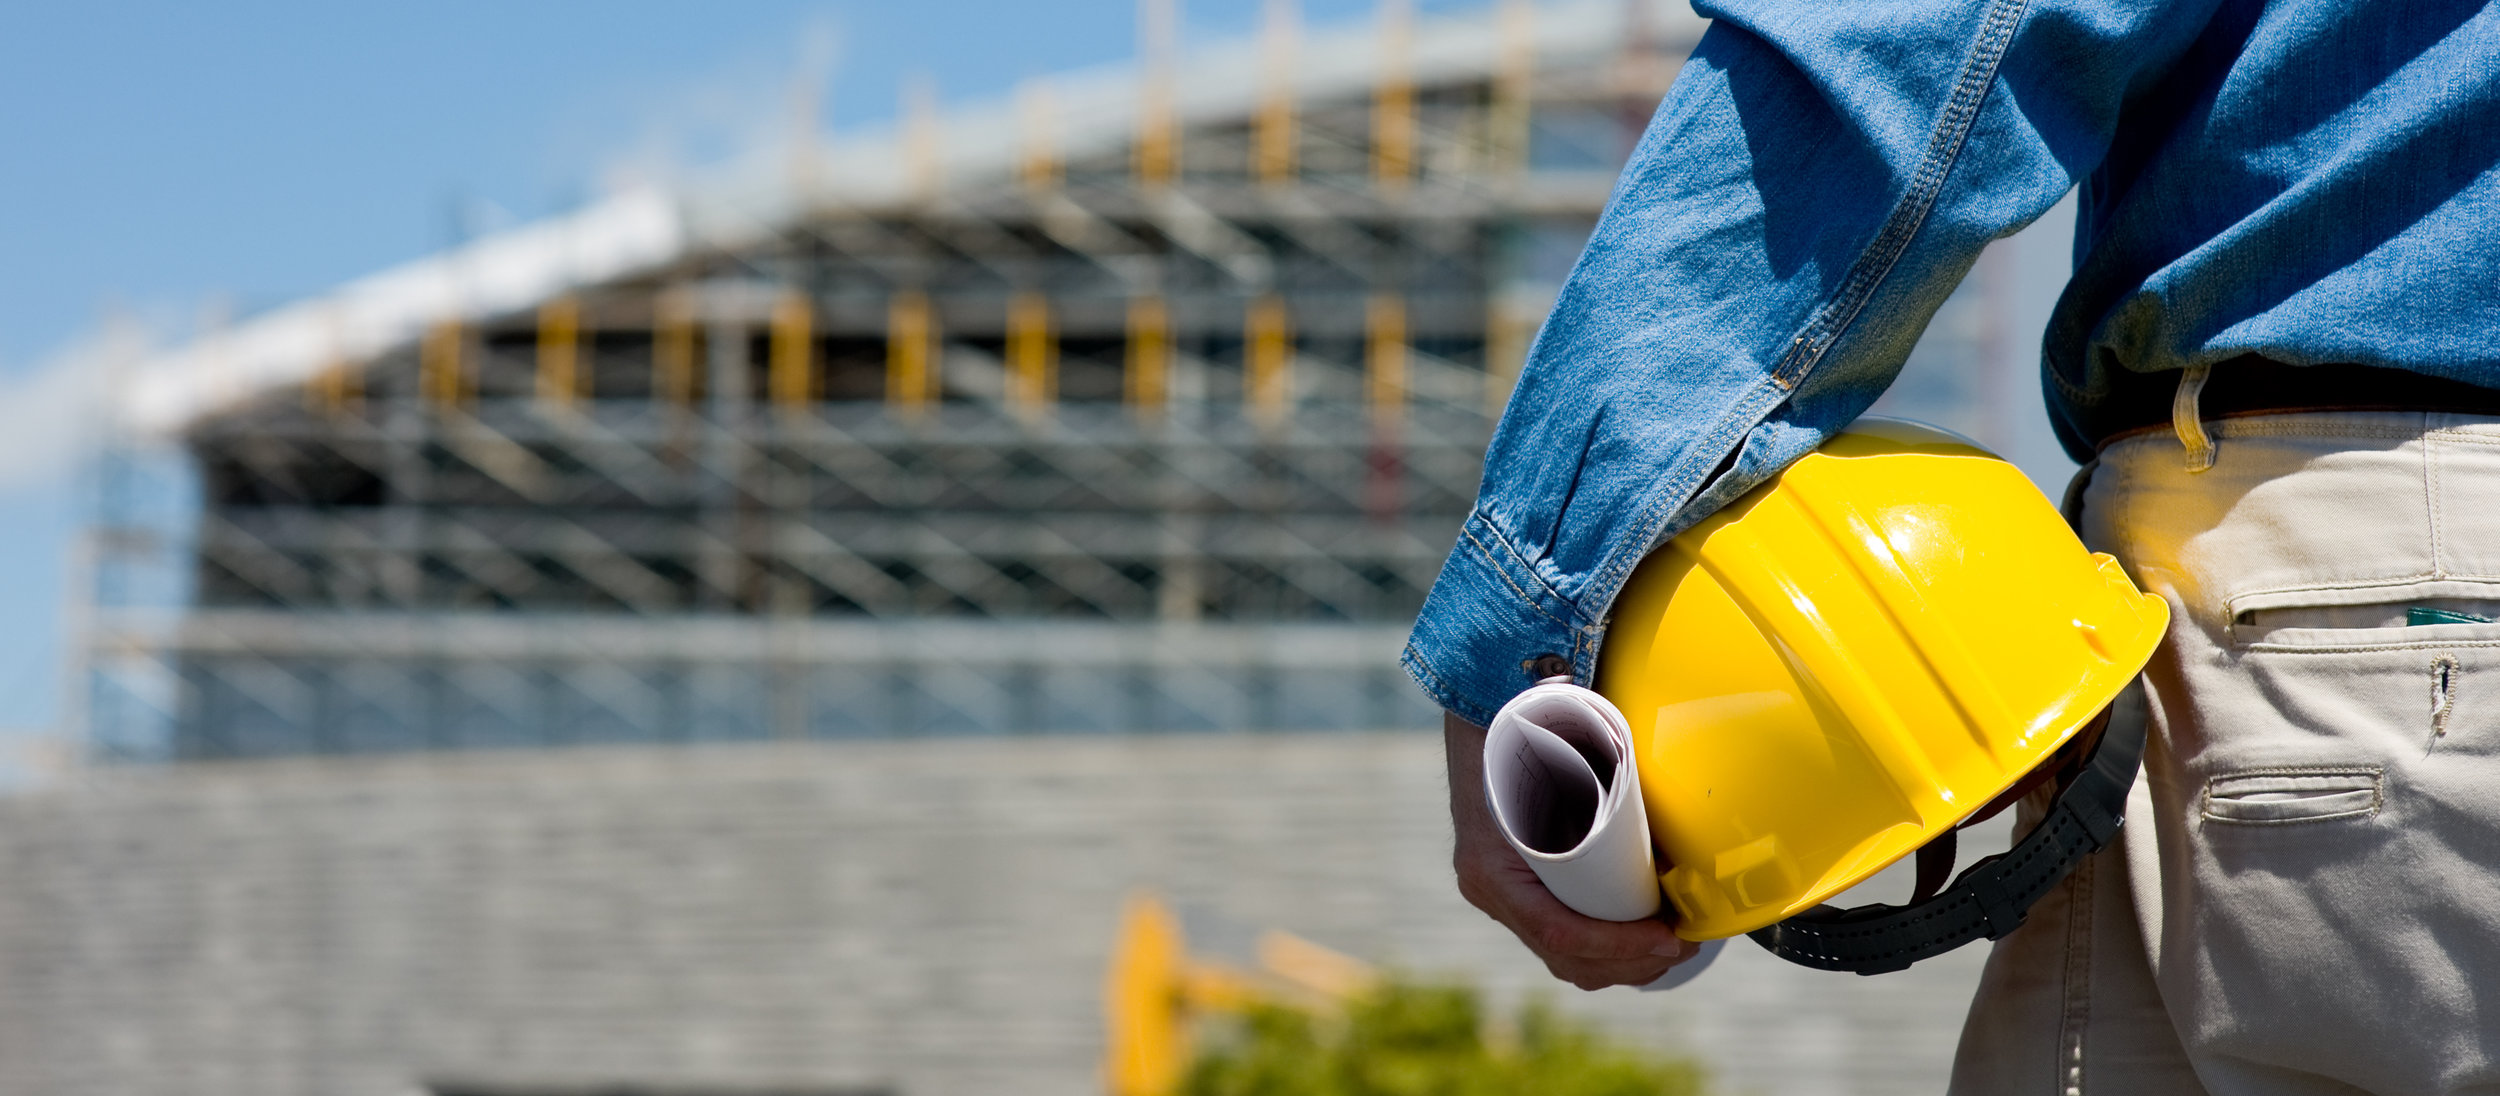 A construction worker or foreman at a construction site